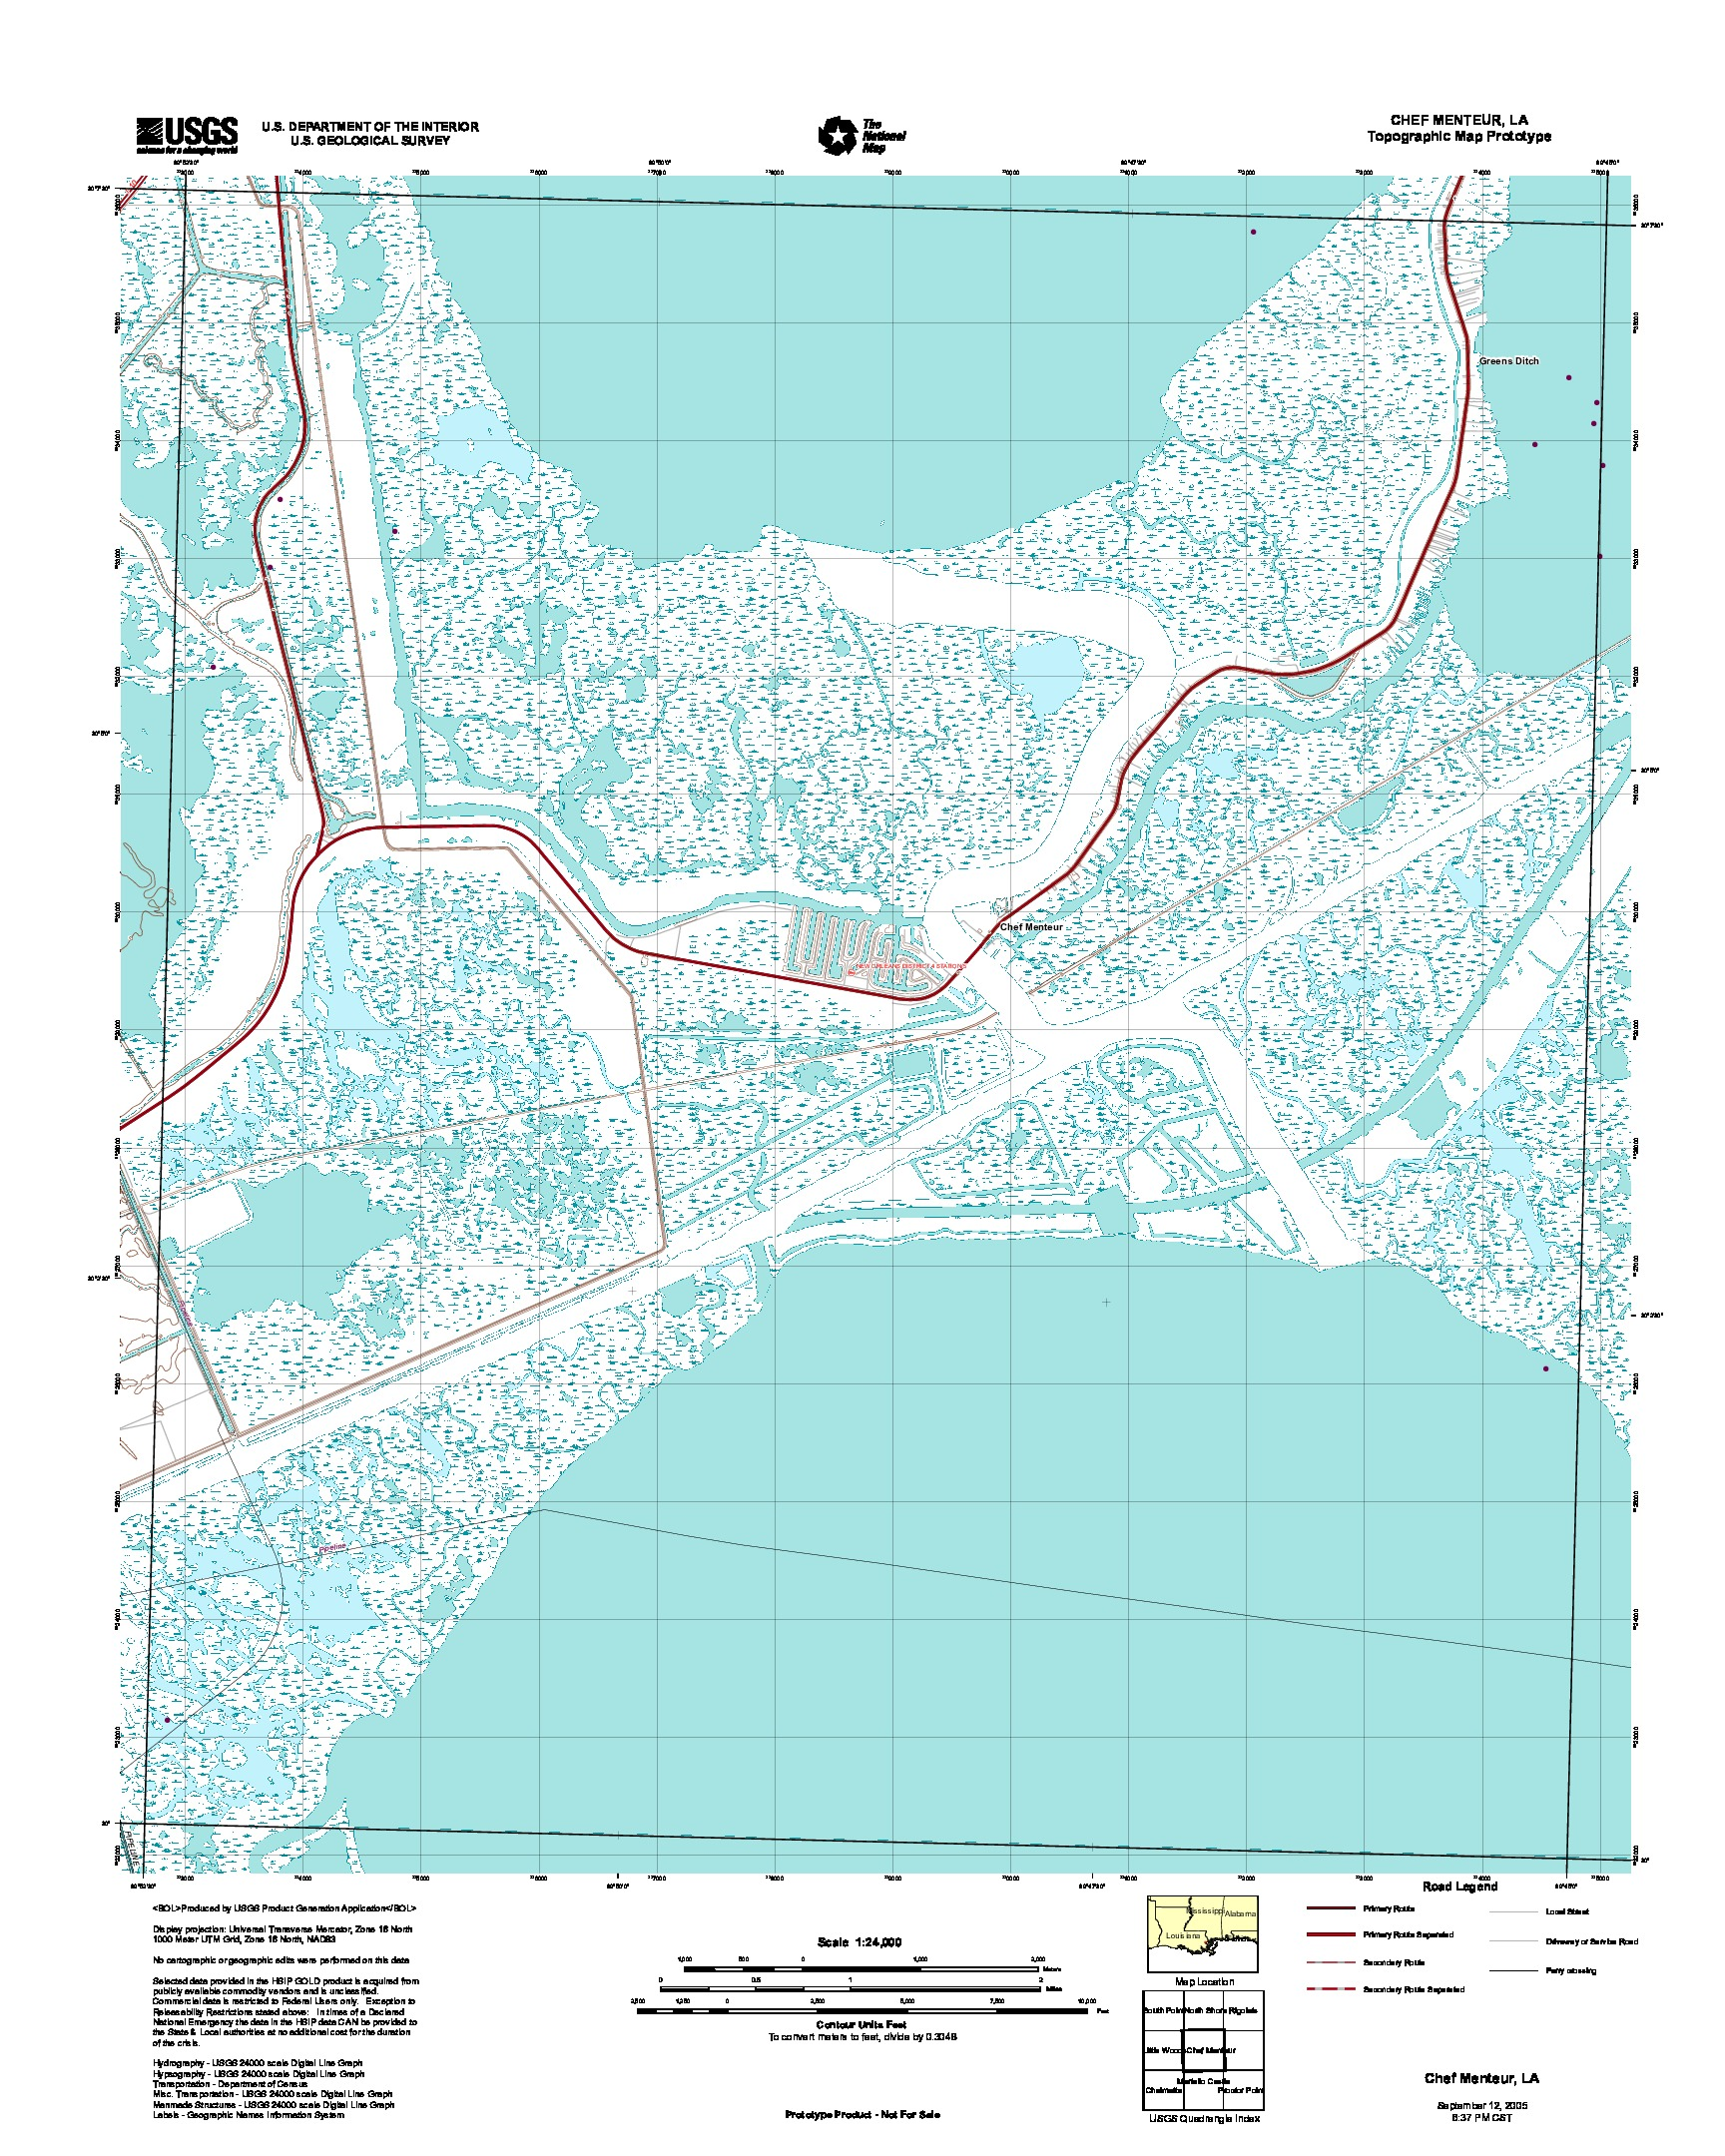 Chef Menteur, Topographic Map Prototype, Louisiana, United States, September 12, 2005